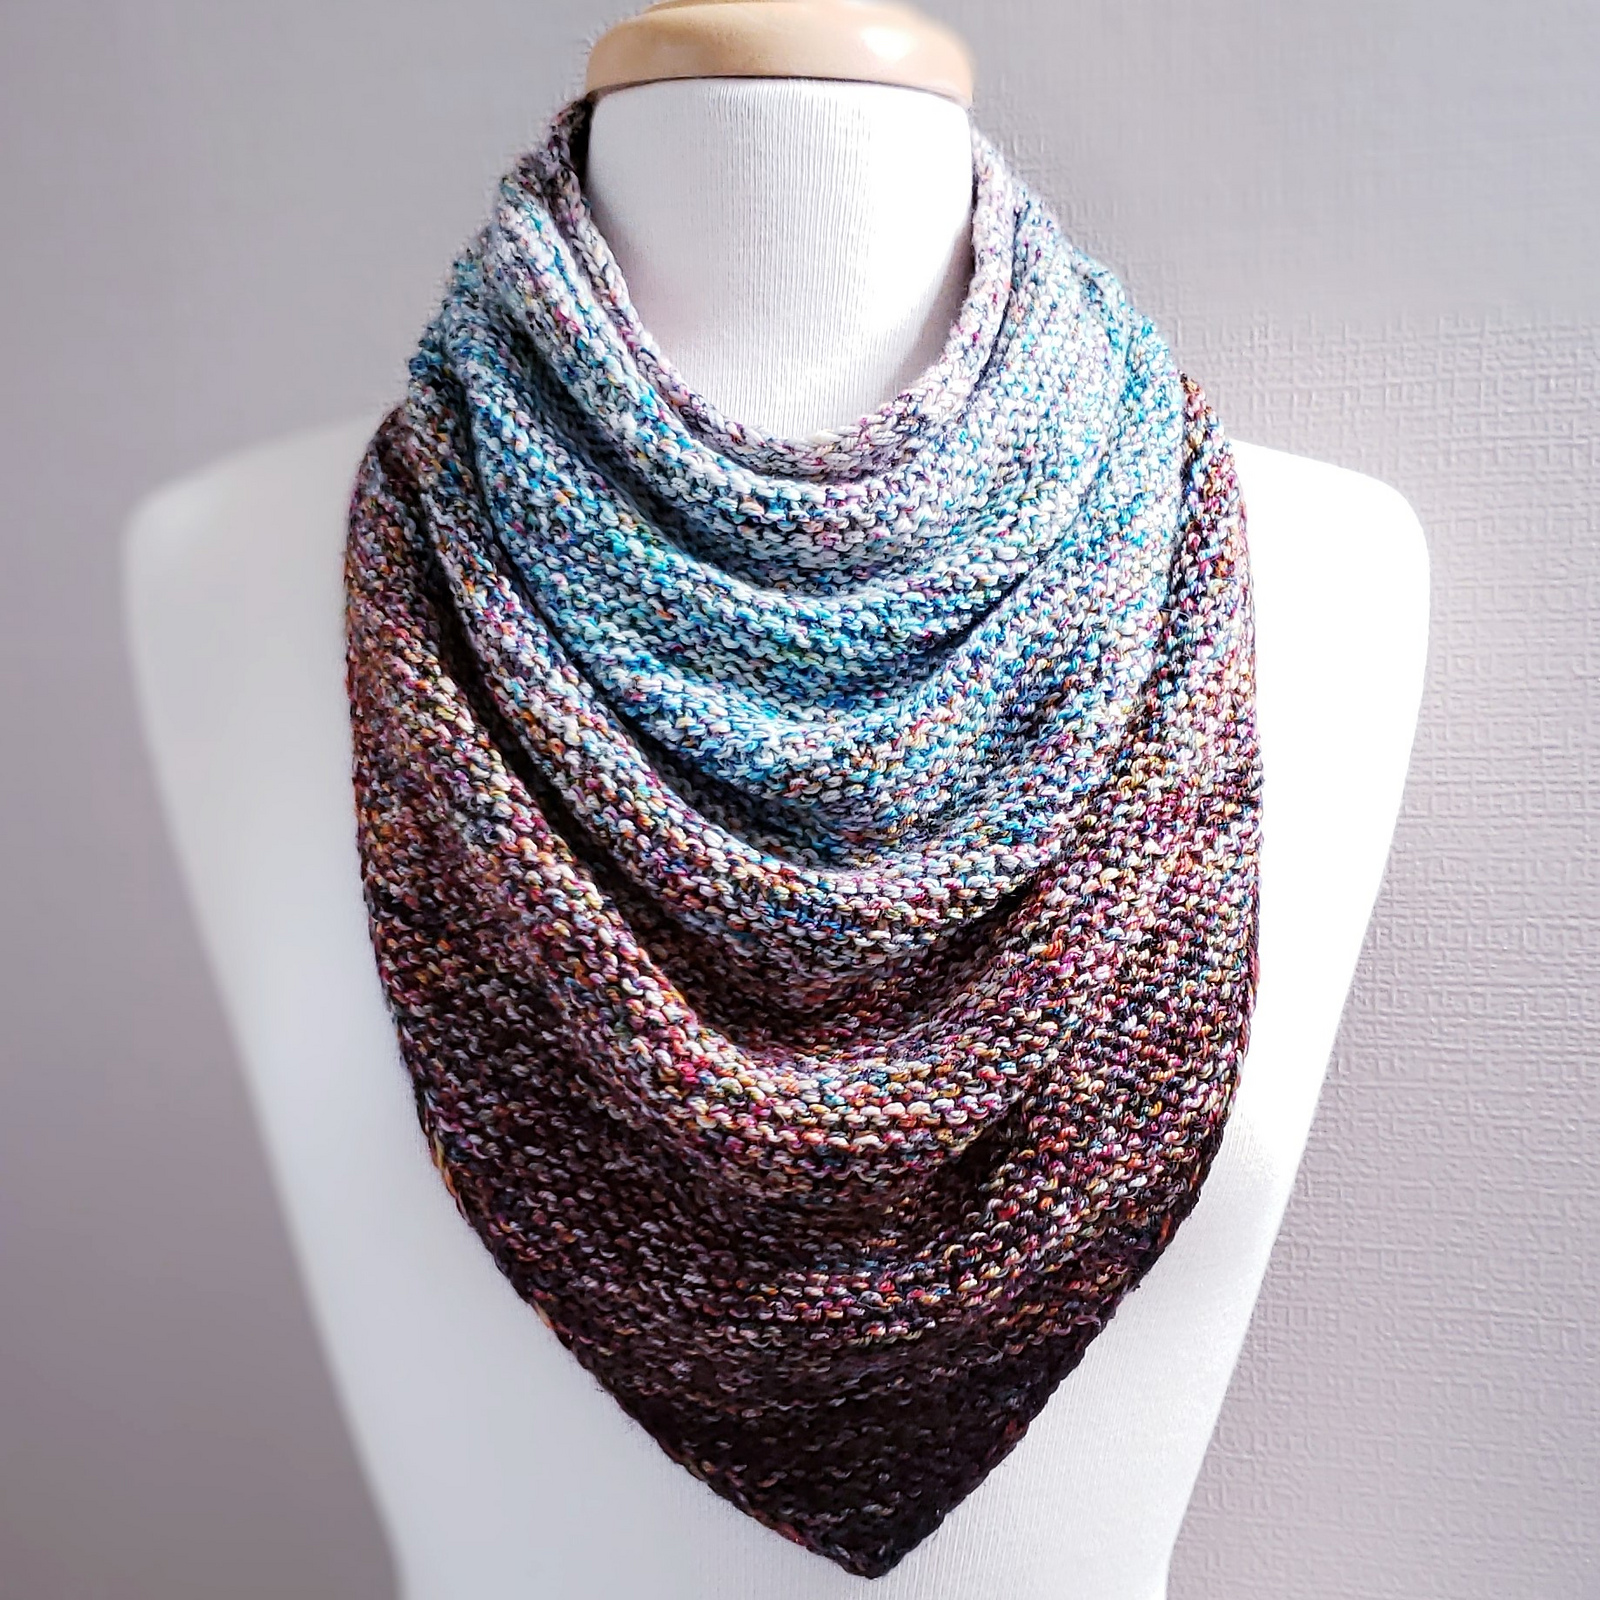 knitted bandana cowl pattern using either DK weight yarn or knitting with two strands of sock weight yarn.